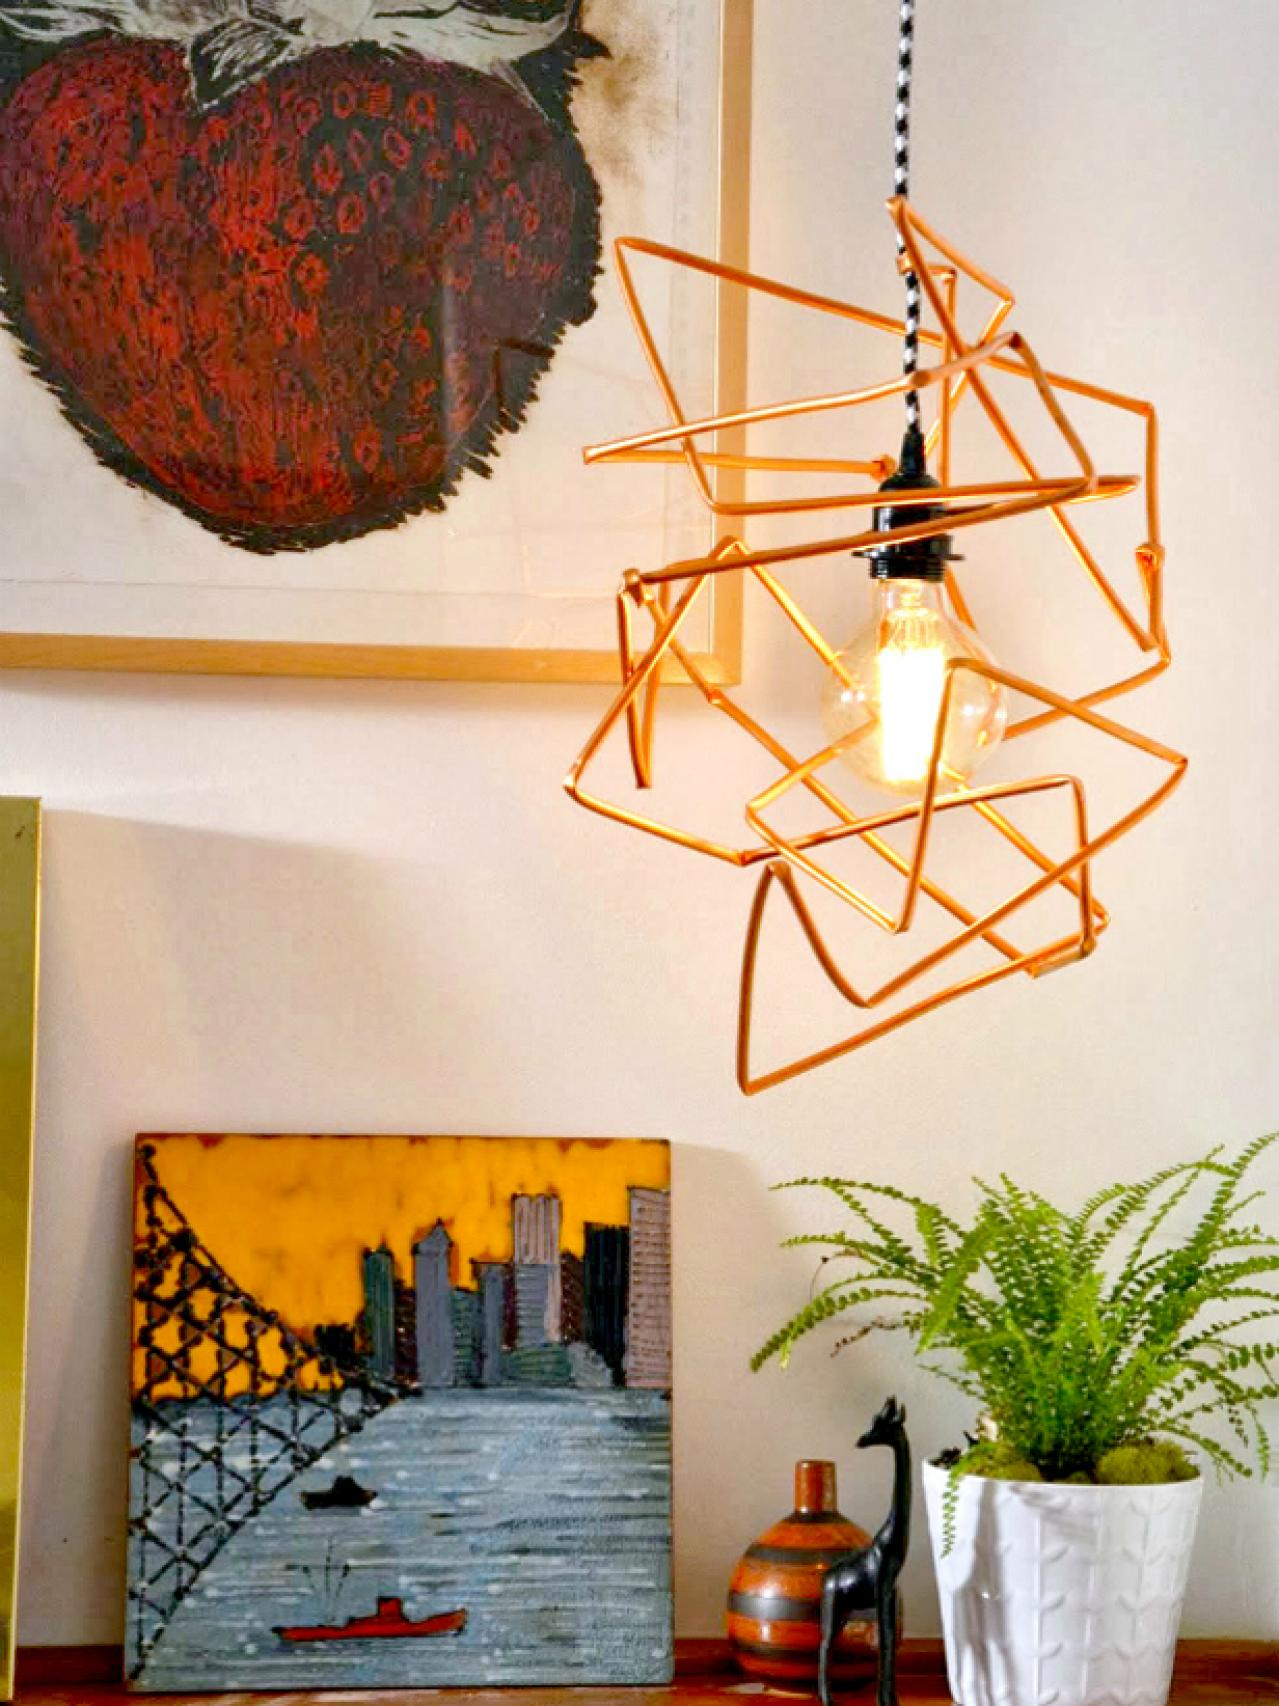 Brighten Up With These DIY Home Lighting Ideas  HGTVs